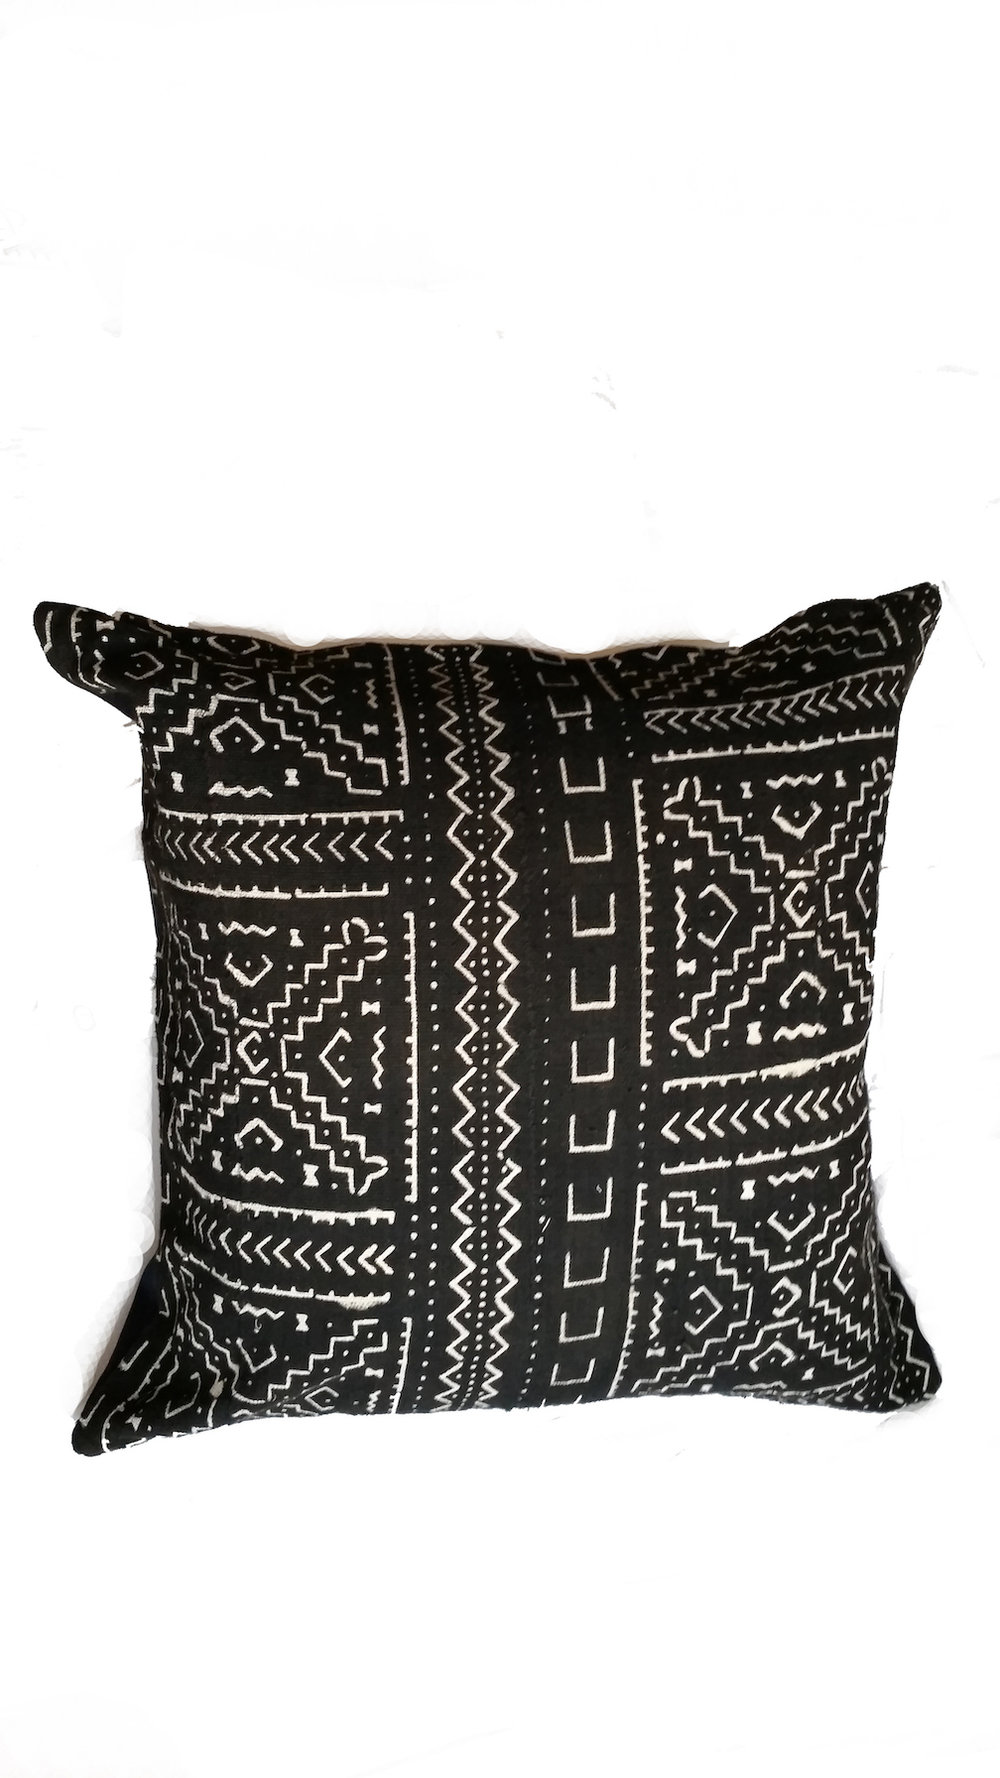 Mud Cloth Pillow.jpg